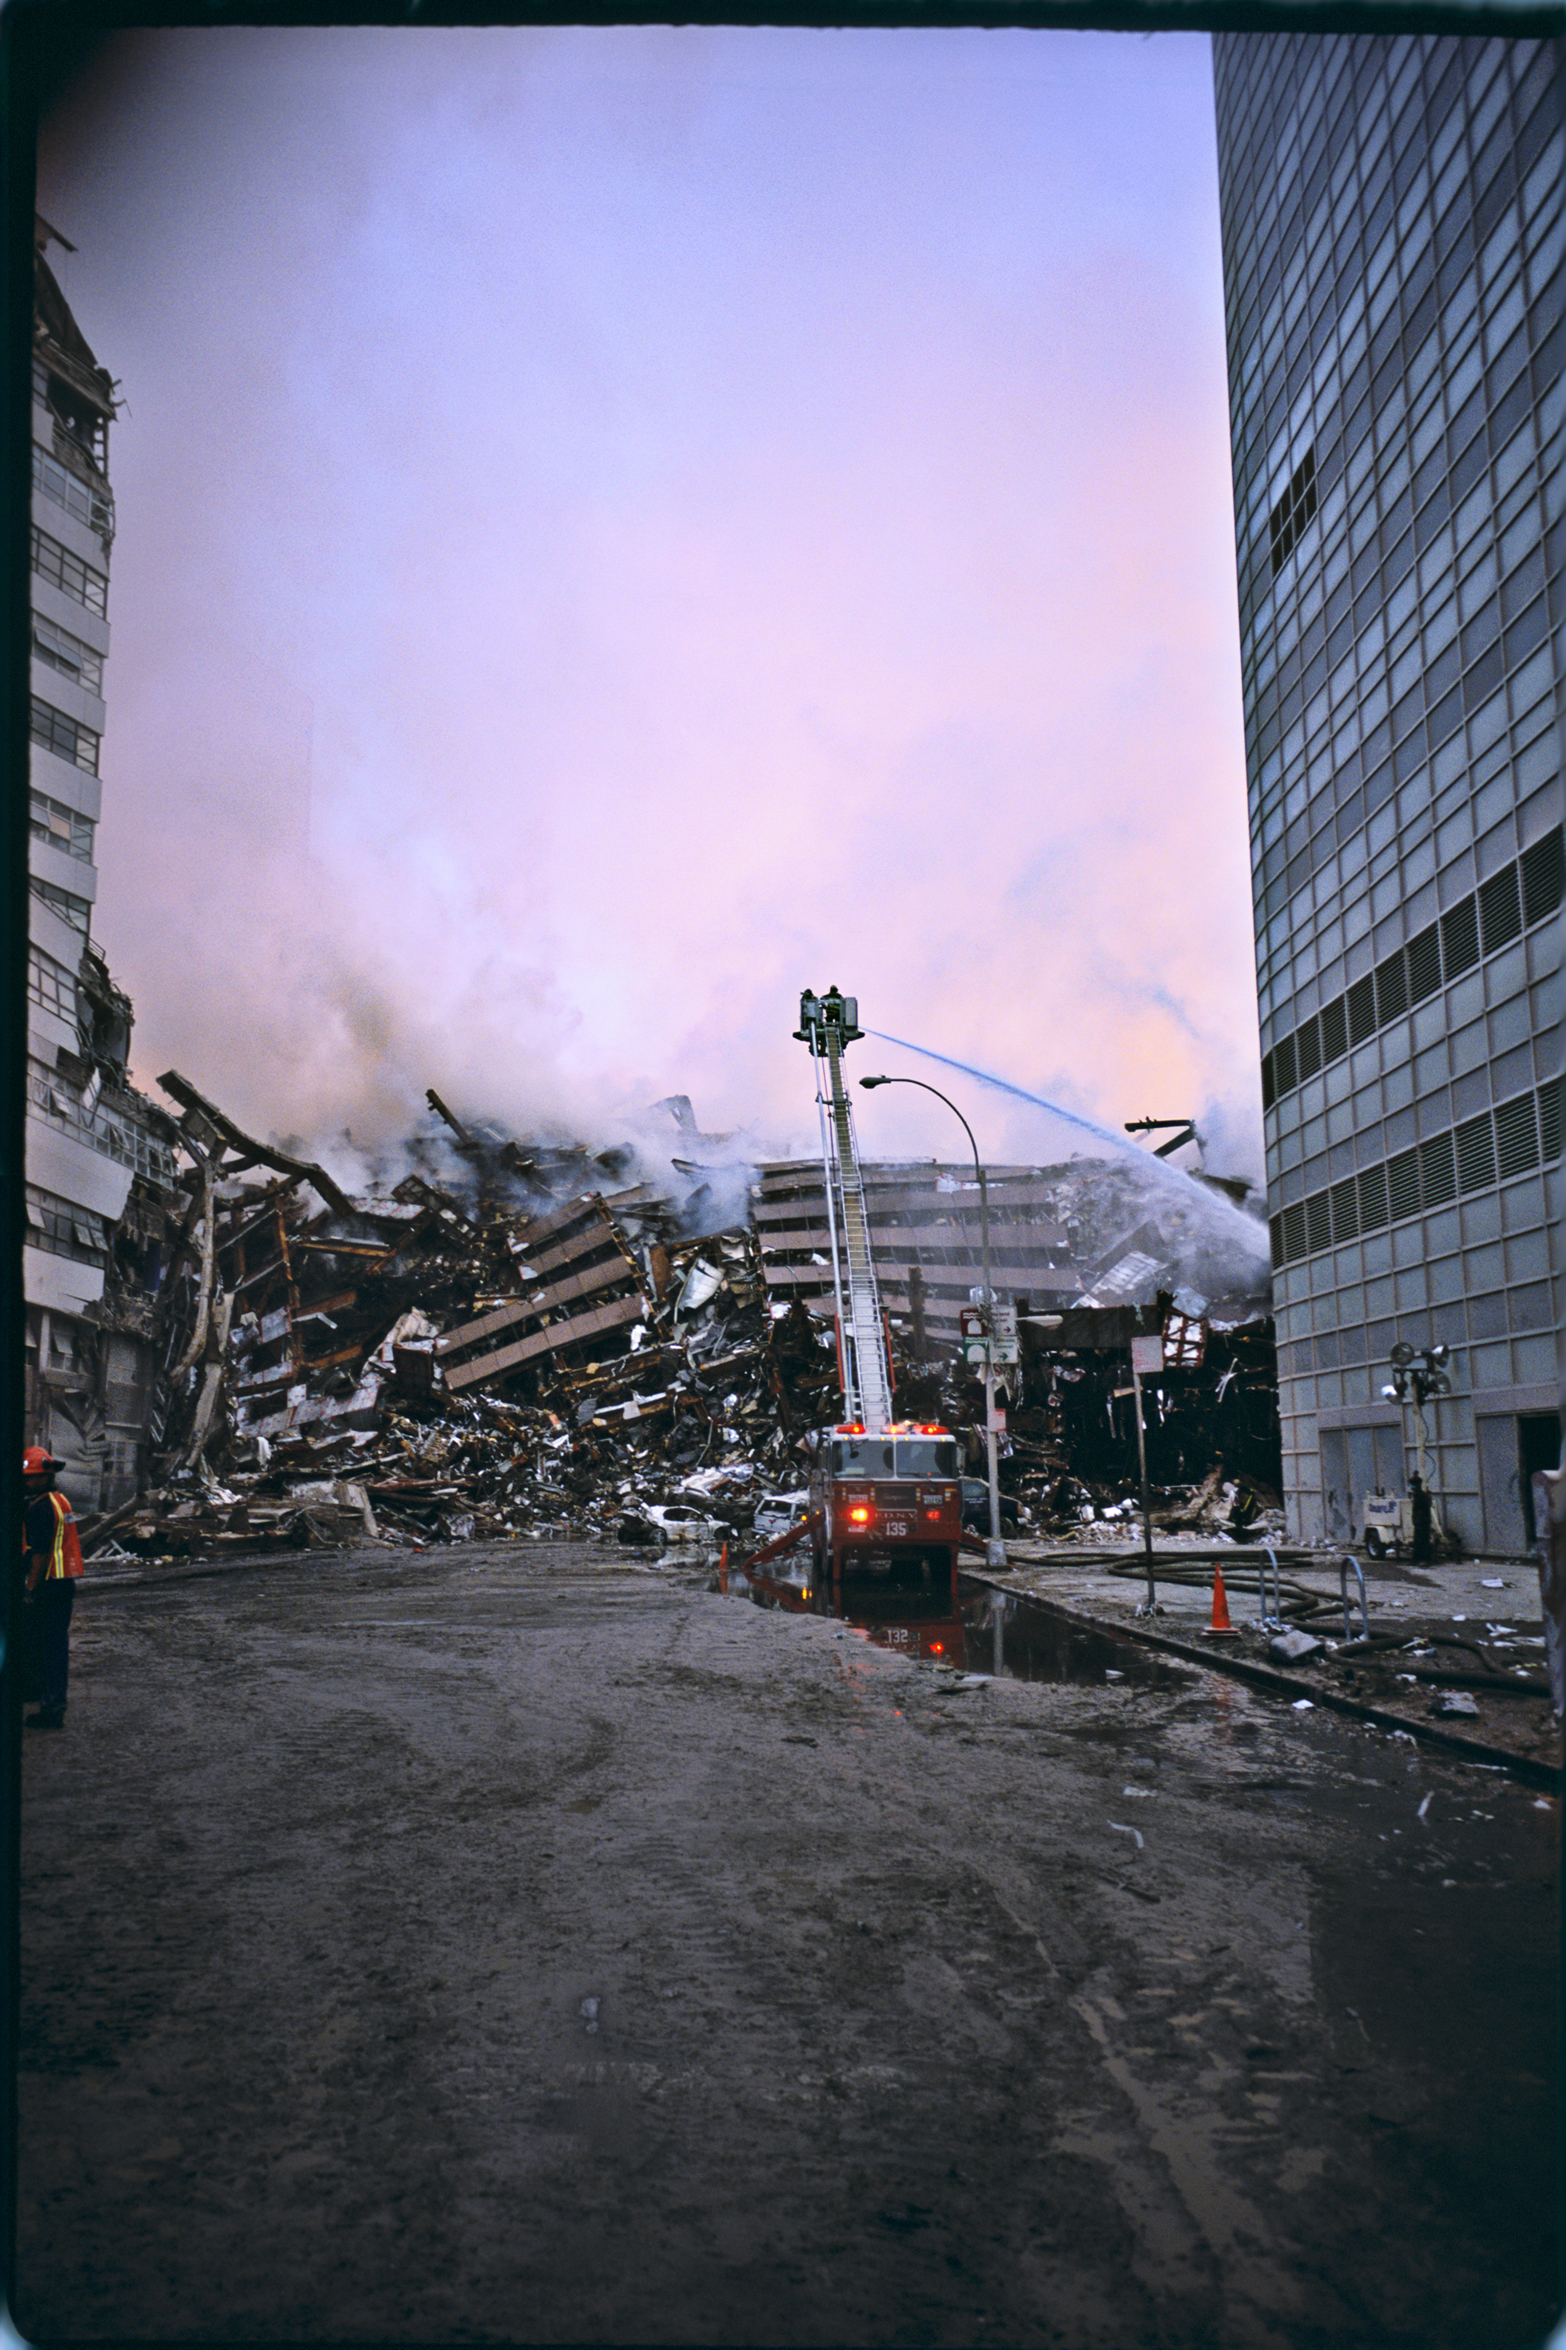 The aftermath of the collapse of World Trade Center 7, on Sept. 11, 2001.